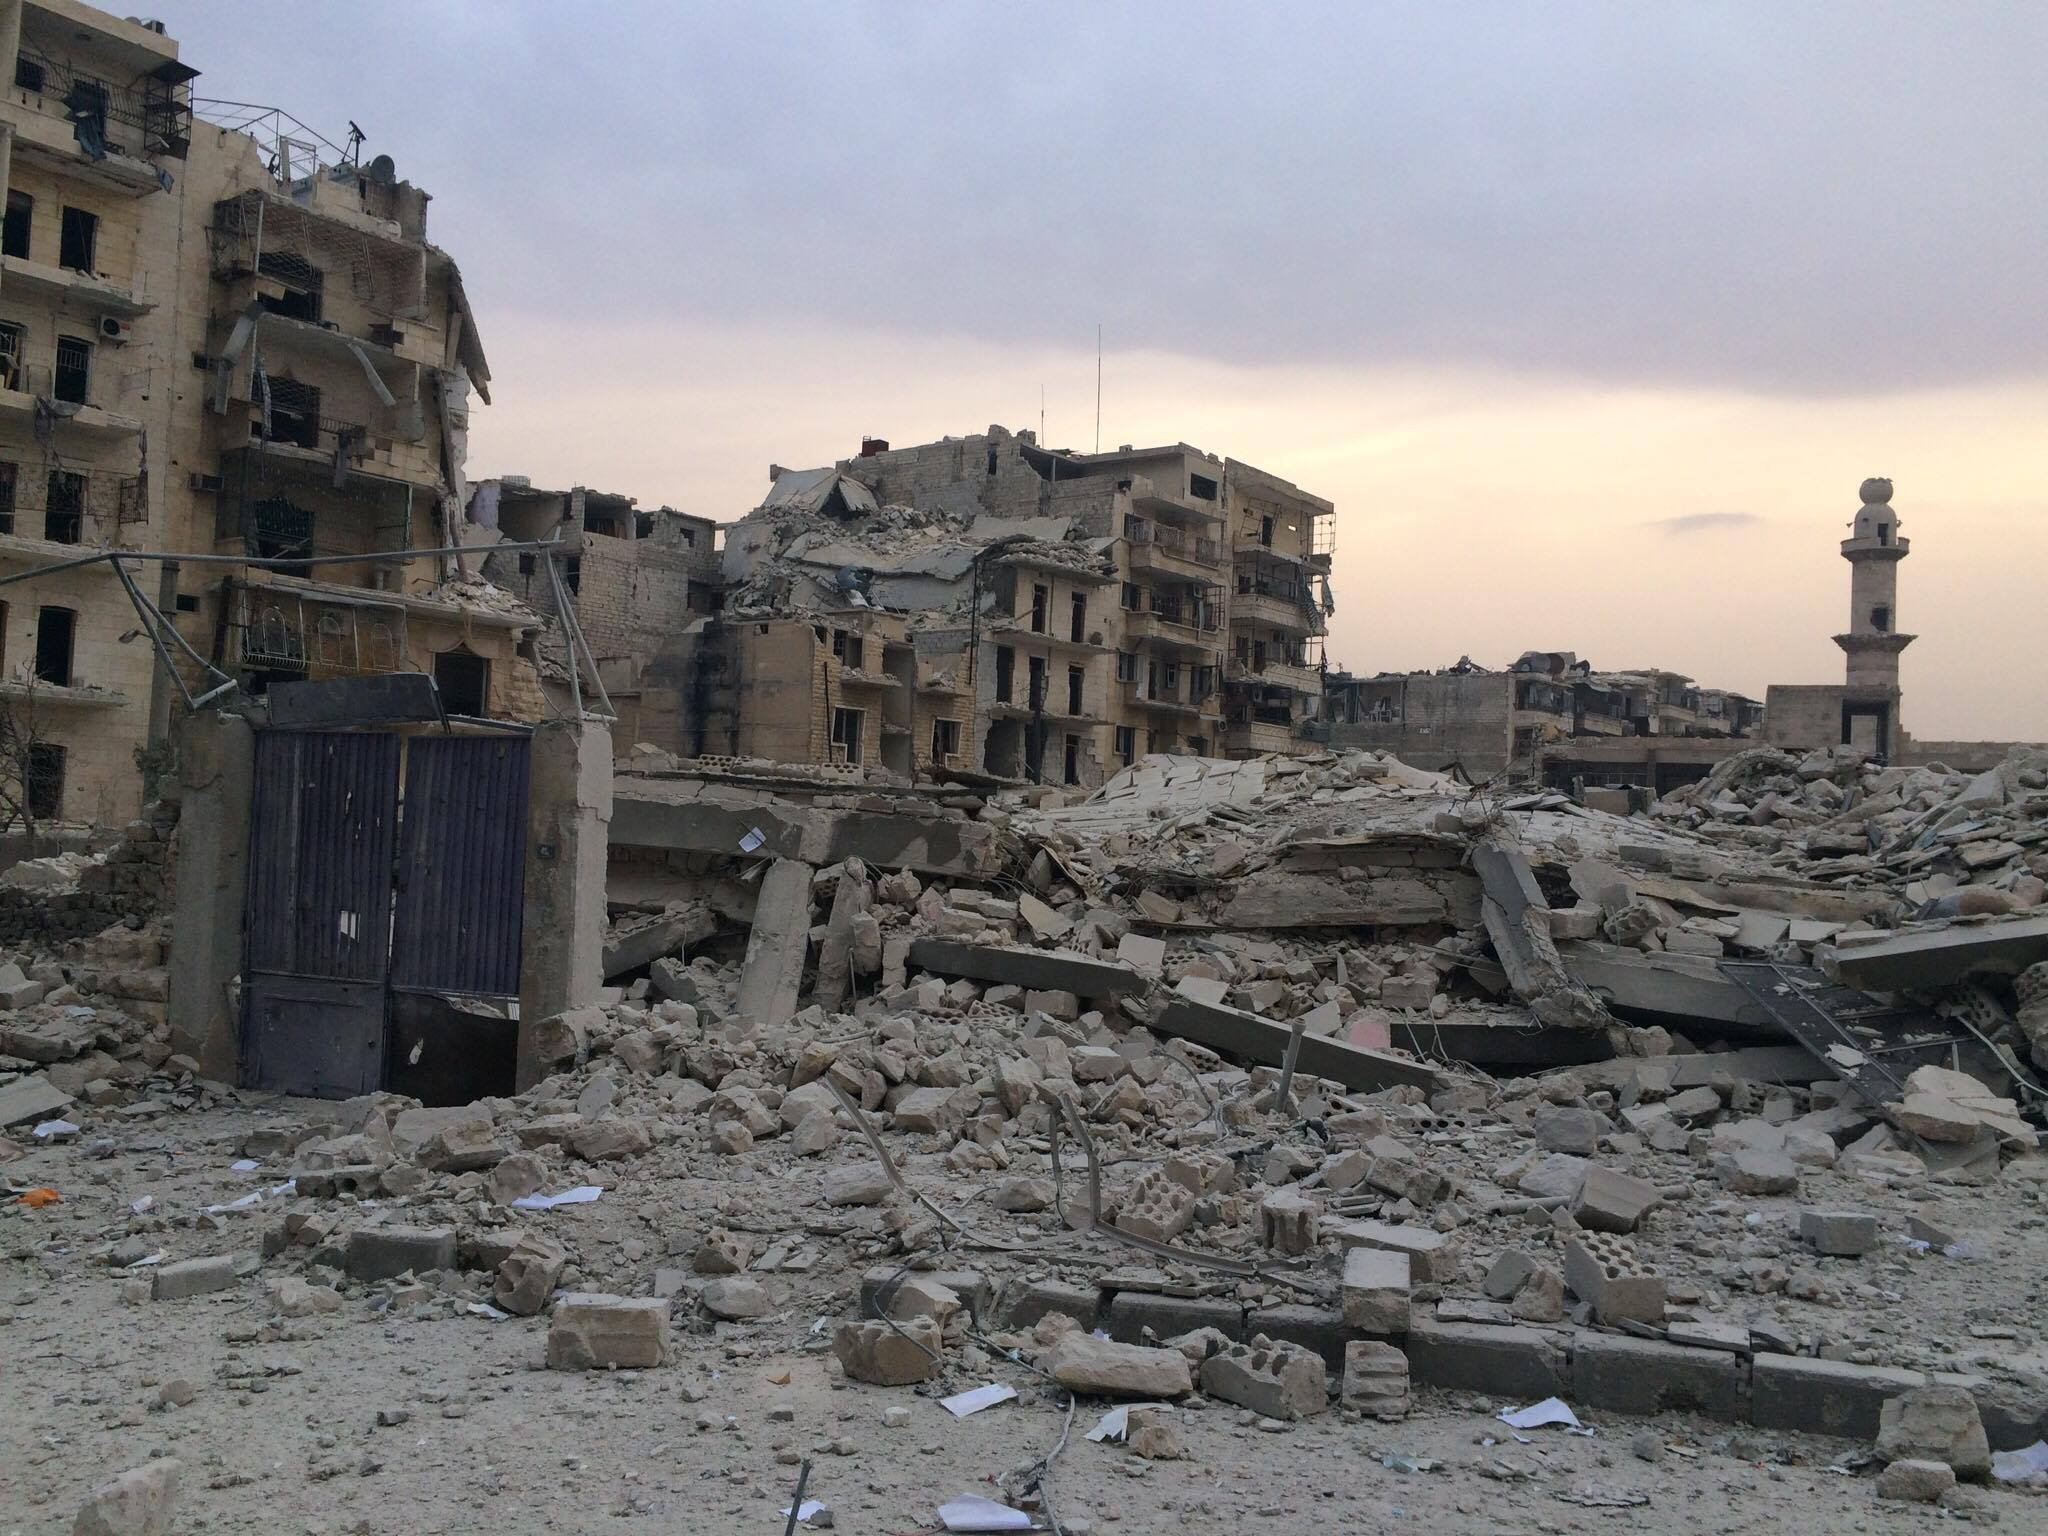 One of the many destroyed neighborhoods of Aleppo. Photo sent by Abdelrazzak Zakzouk to Global Voices.